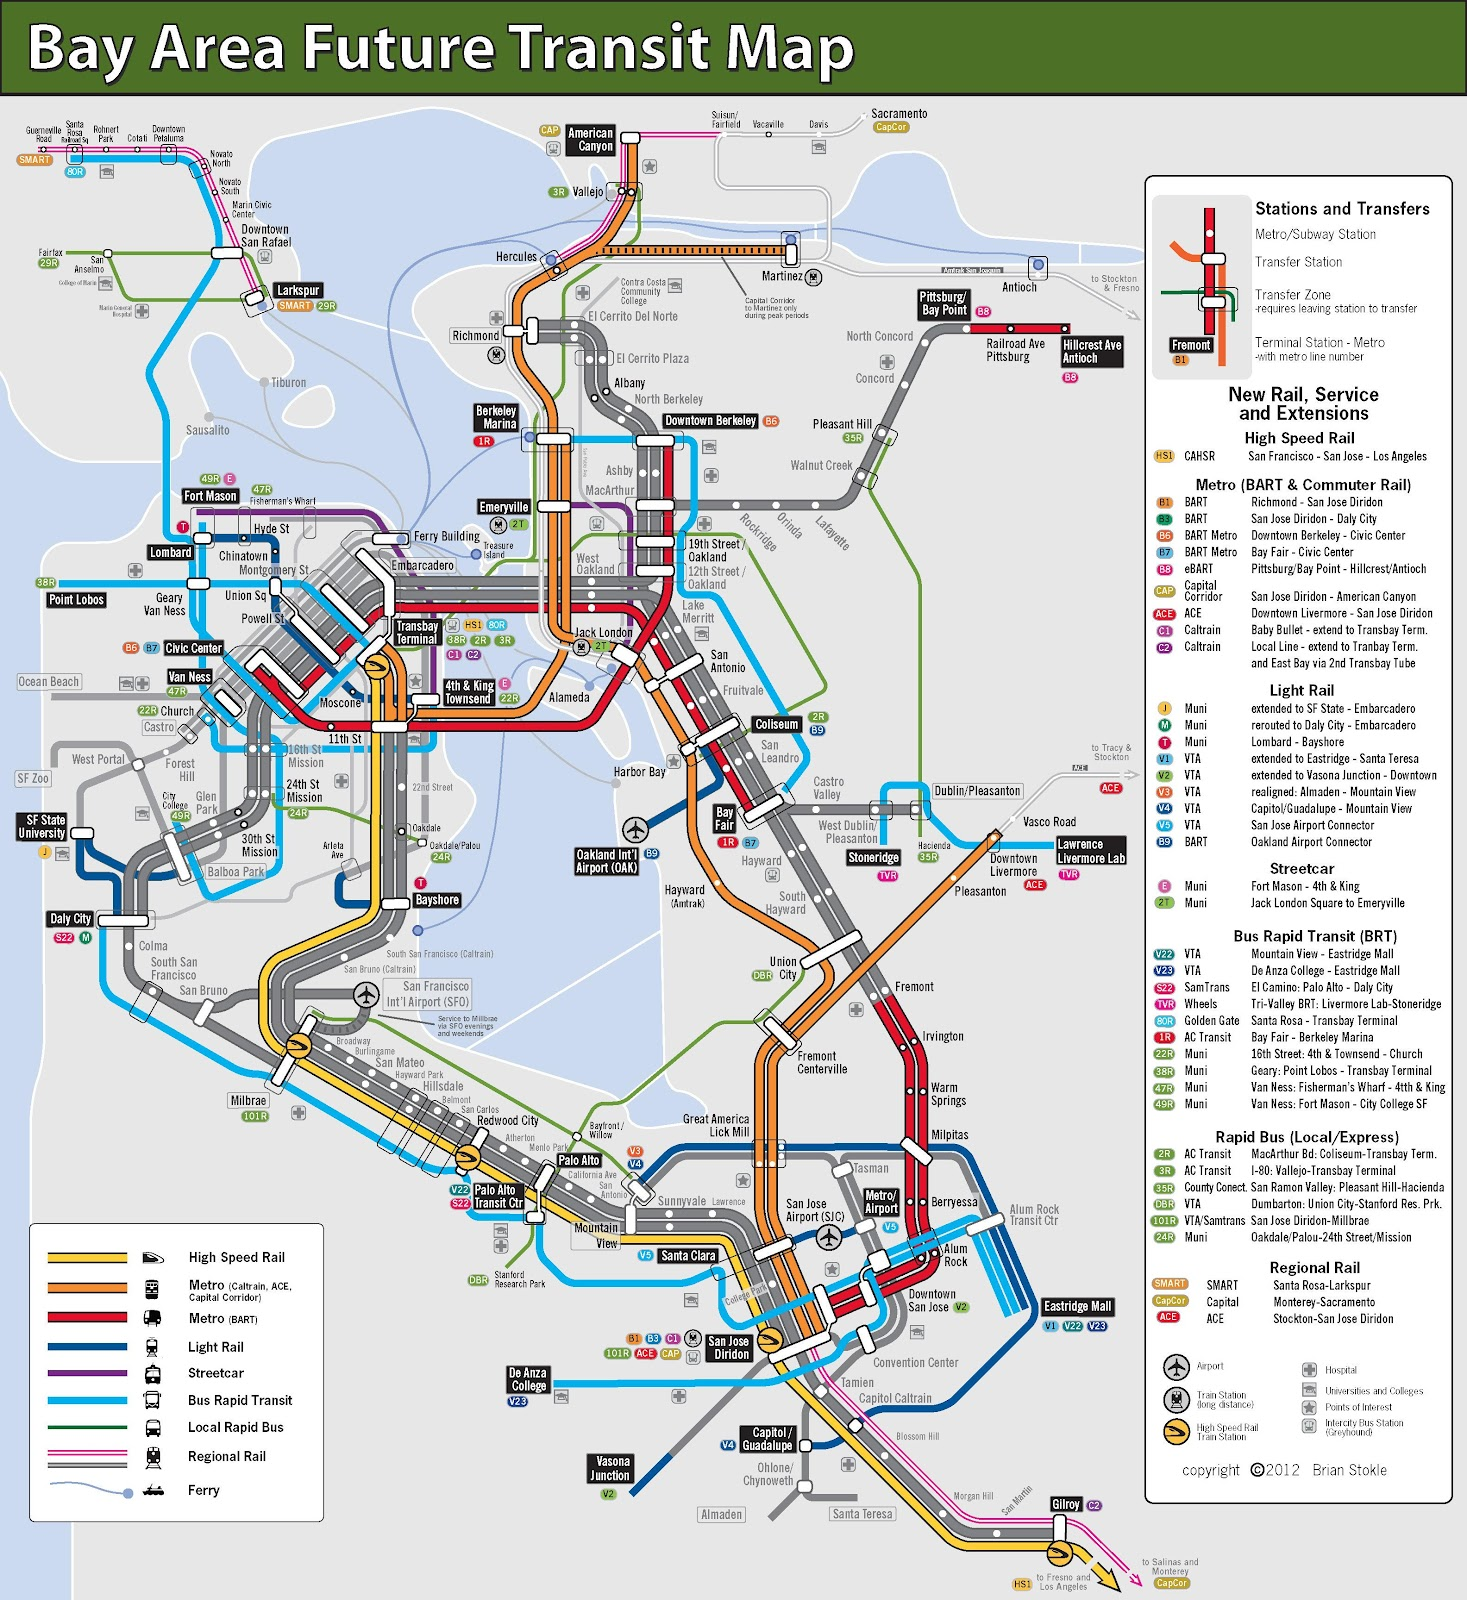 Bay Area Transit Map A Possible Future The bay area is home to a number of renowned hospitals that provide expert care. bay area transit map a possible future